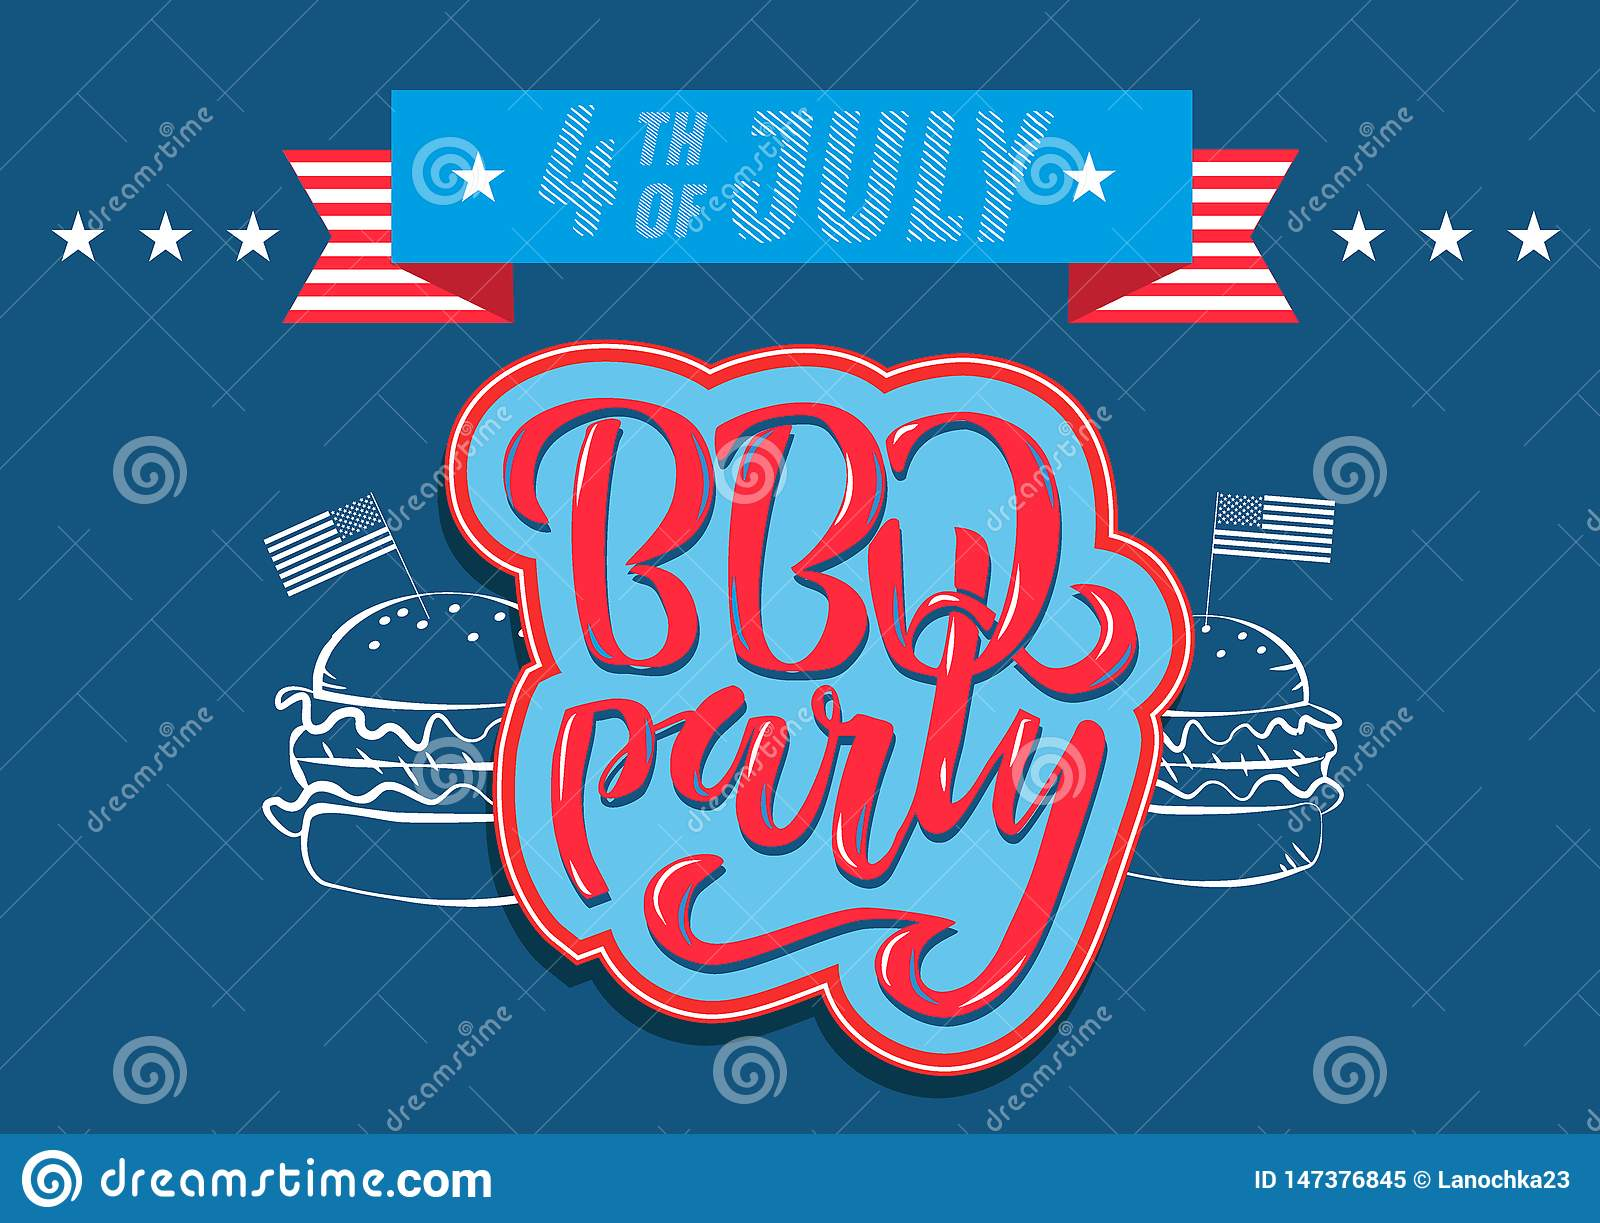 July 4th BBQ Party lettering invitation to American independence day barbeque with July 4th decorations stars, flags, fireworks on